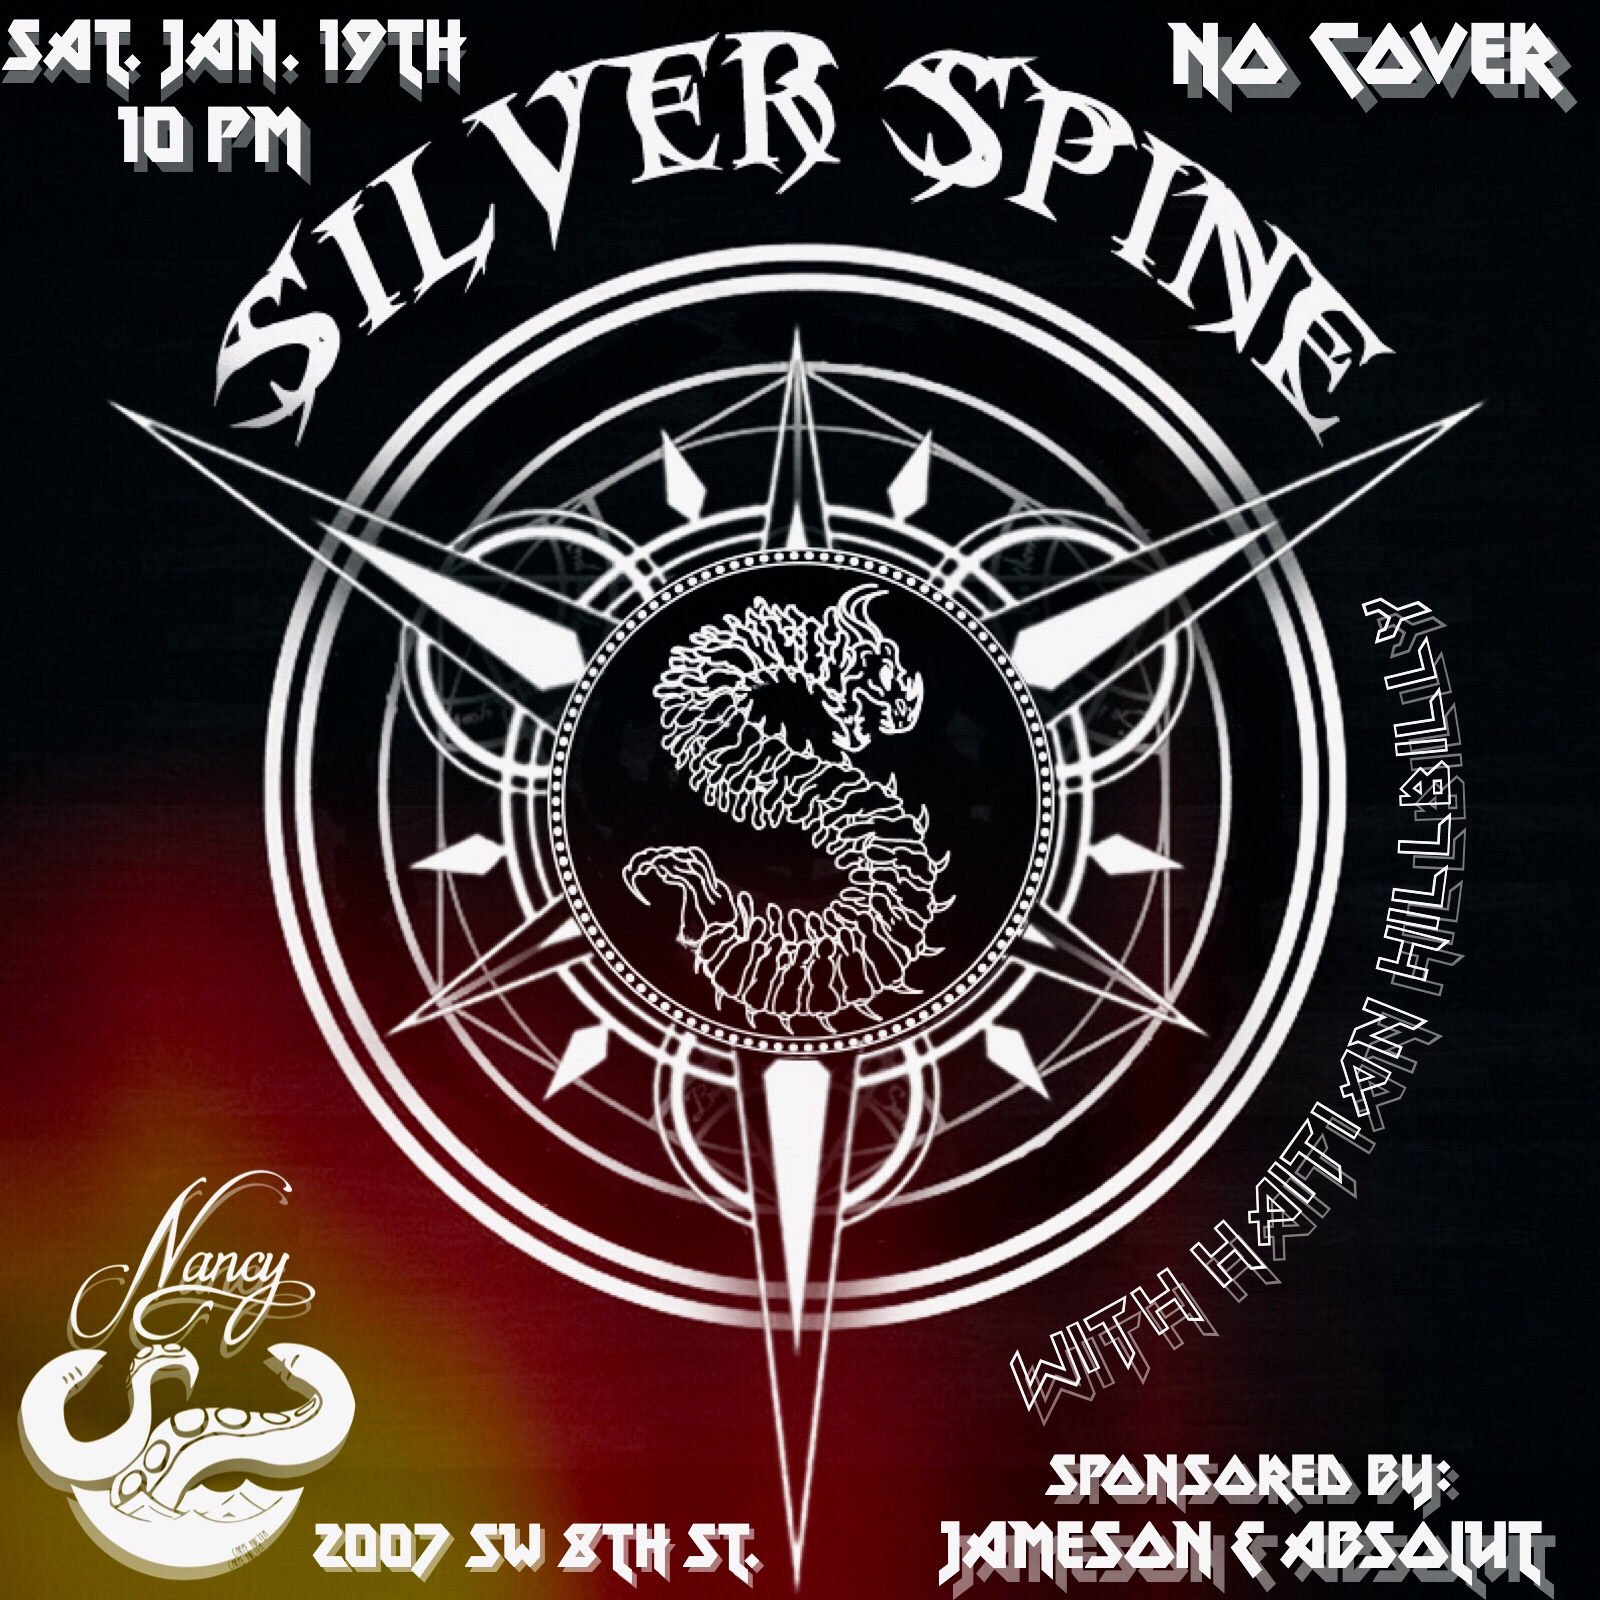 SILVER SPINE - SAT JAN 19 - 1OPM - WITH HAITIAN HILLBILLY - NO COVER - SPONSORED BY JAMESON & ABSOLUT